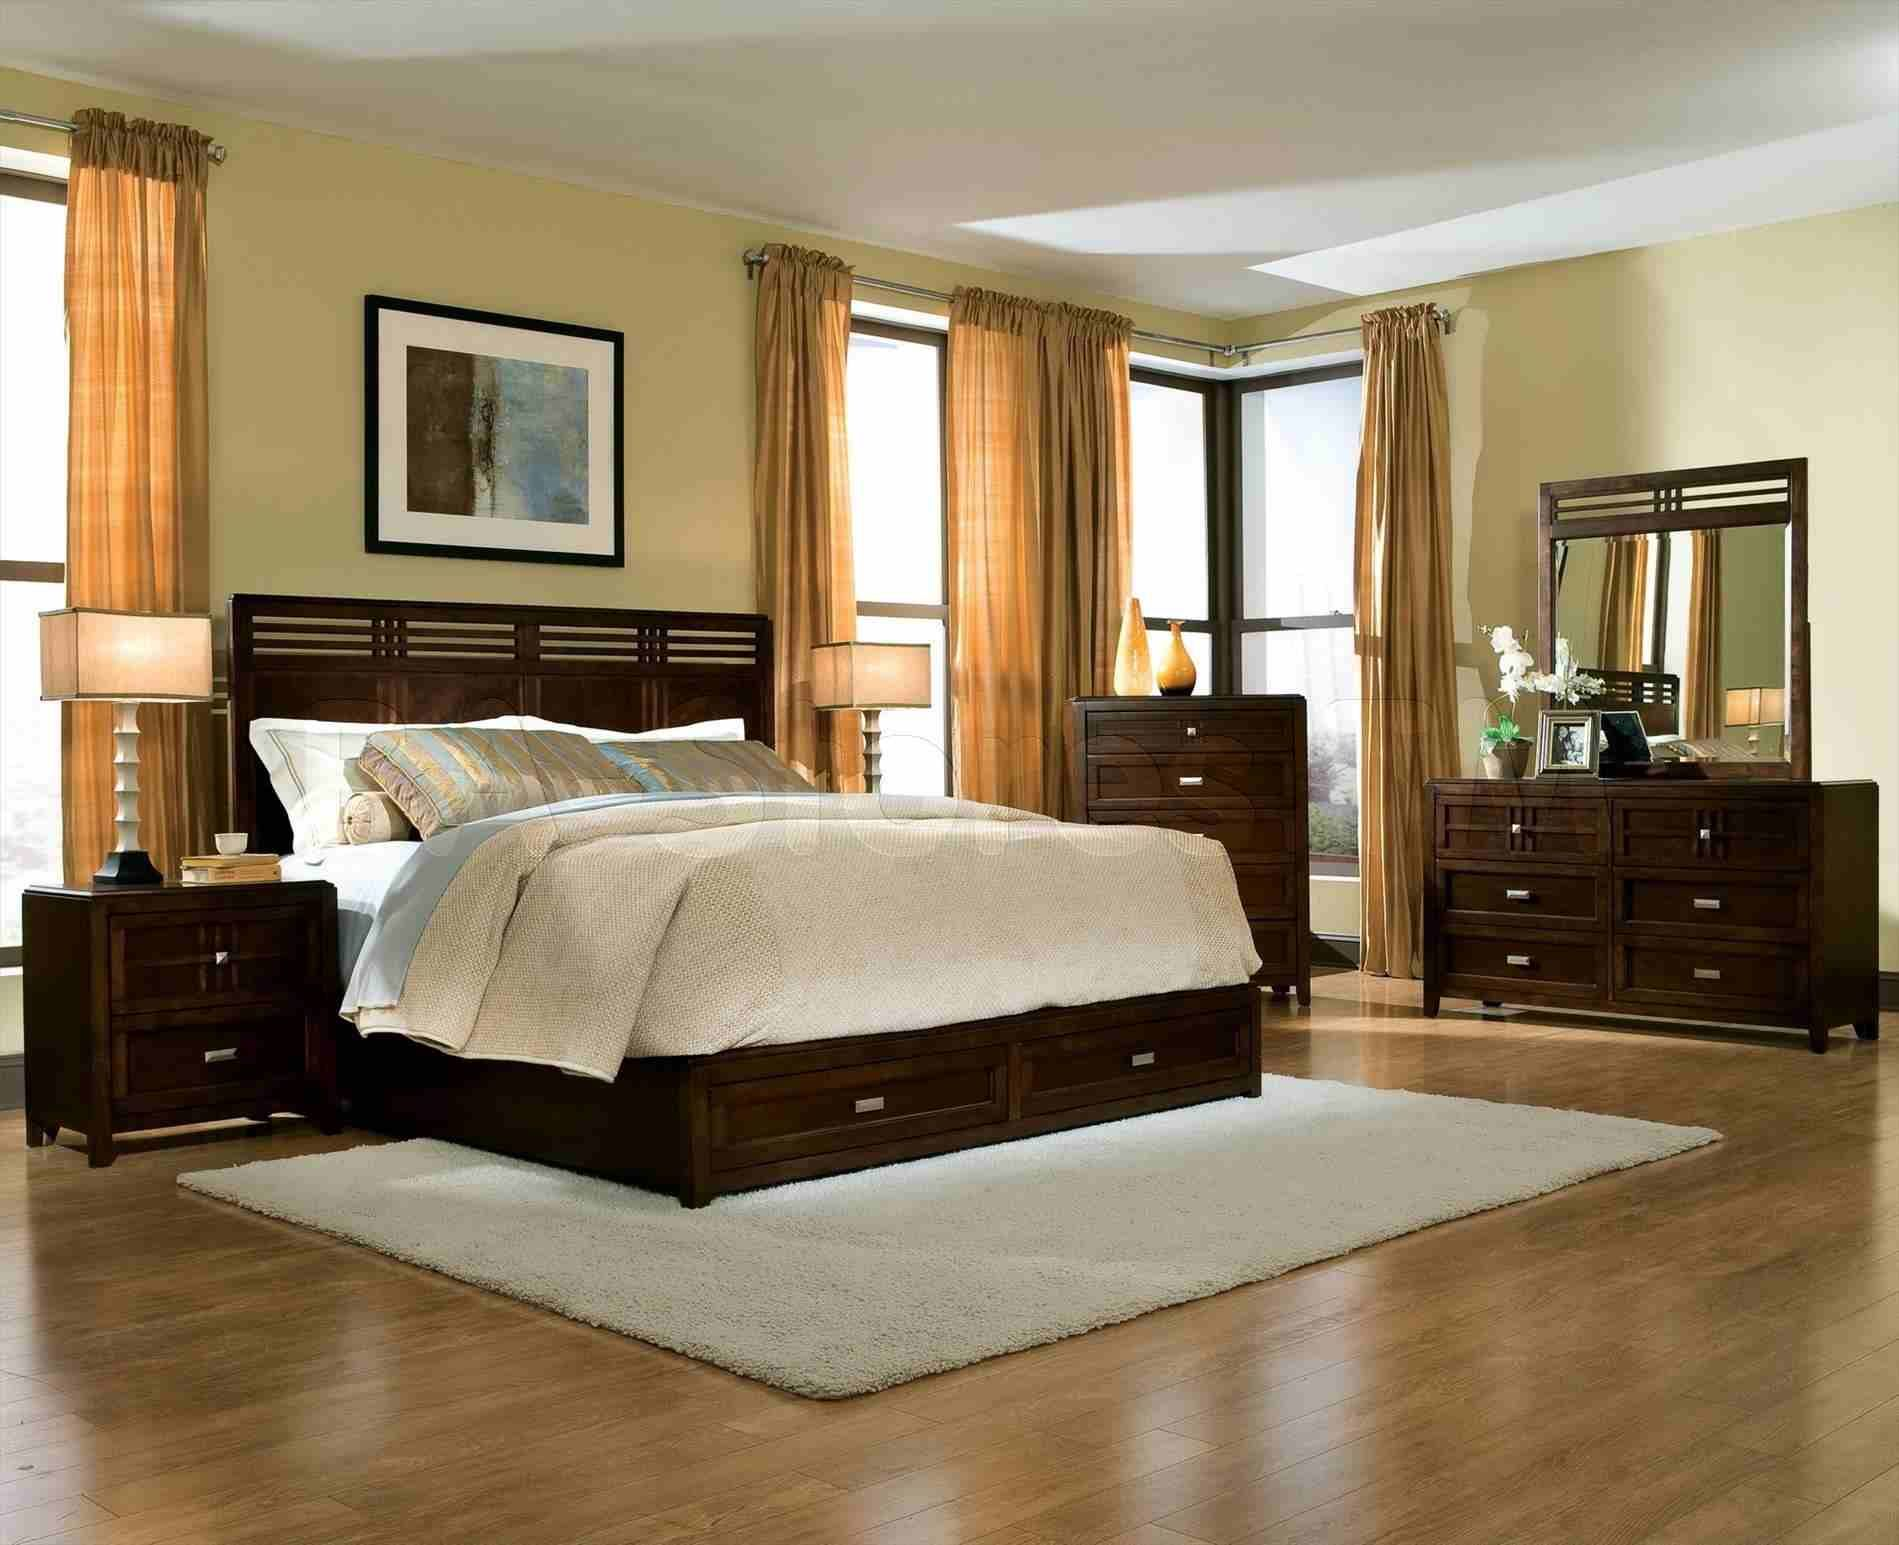 Modern Dark Wood Bedroom Furniture - dark wood floor ...